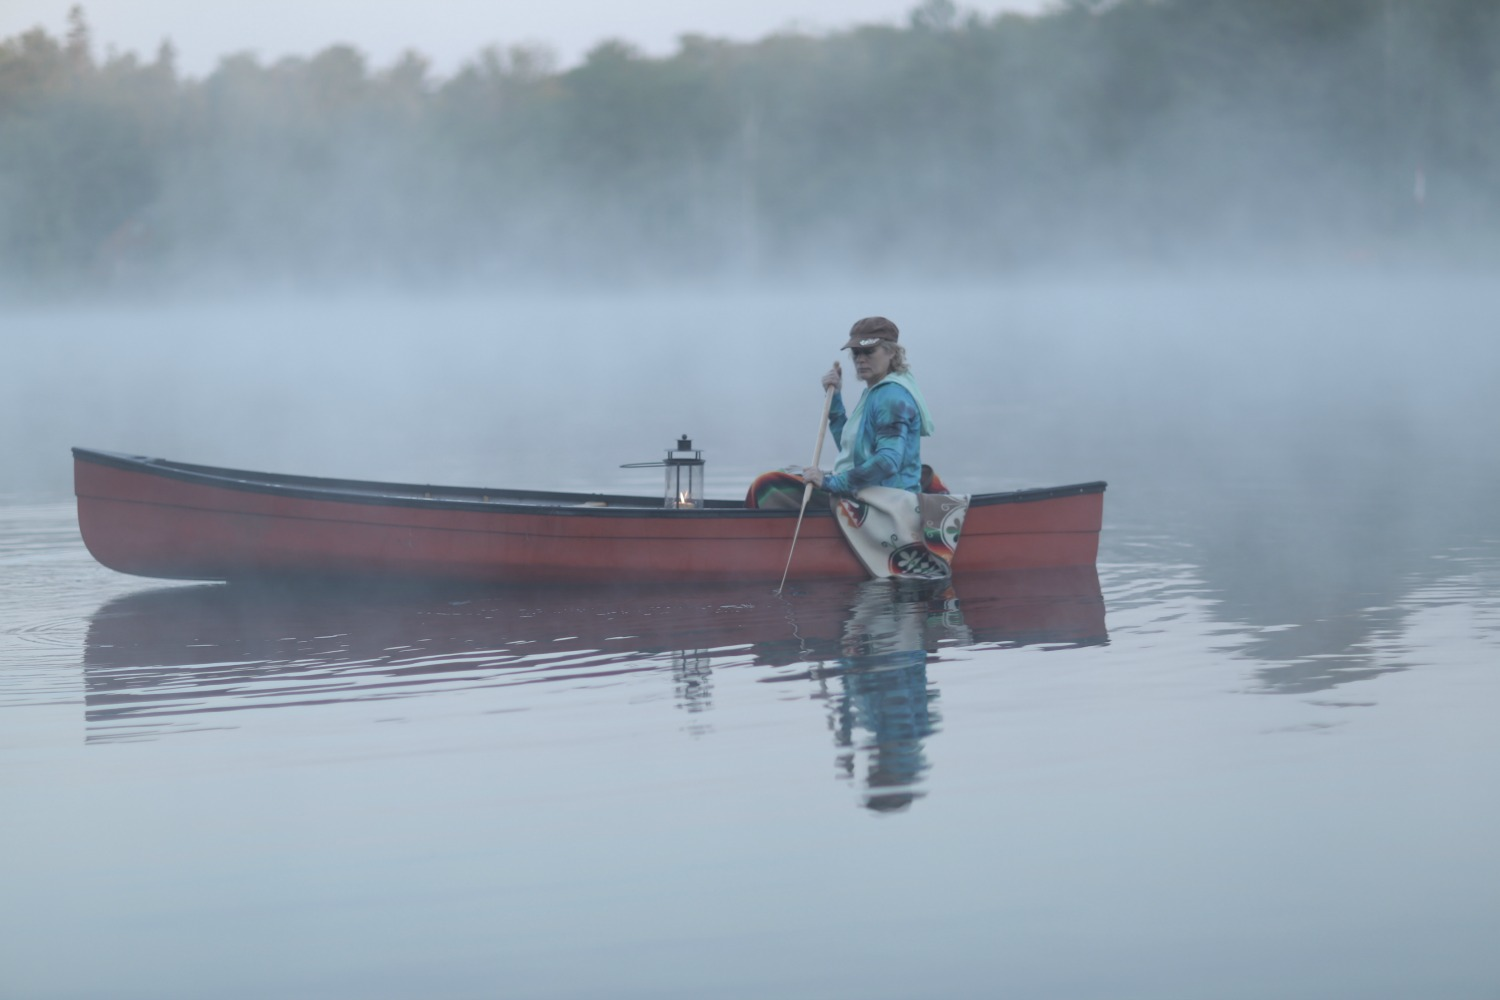 Take an early morning canoe ride